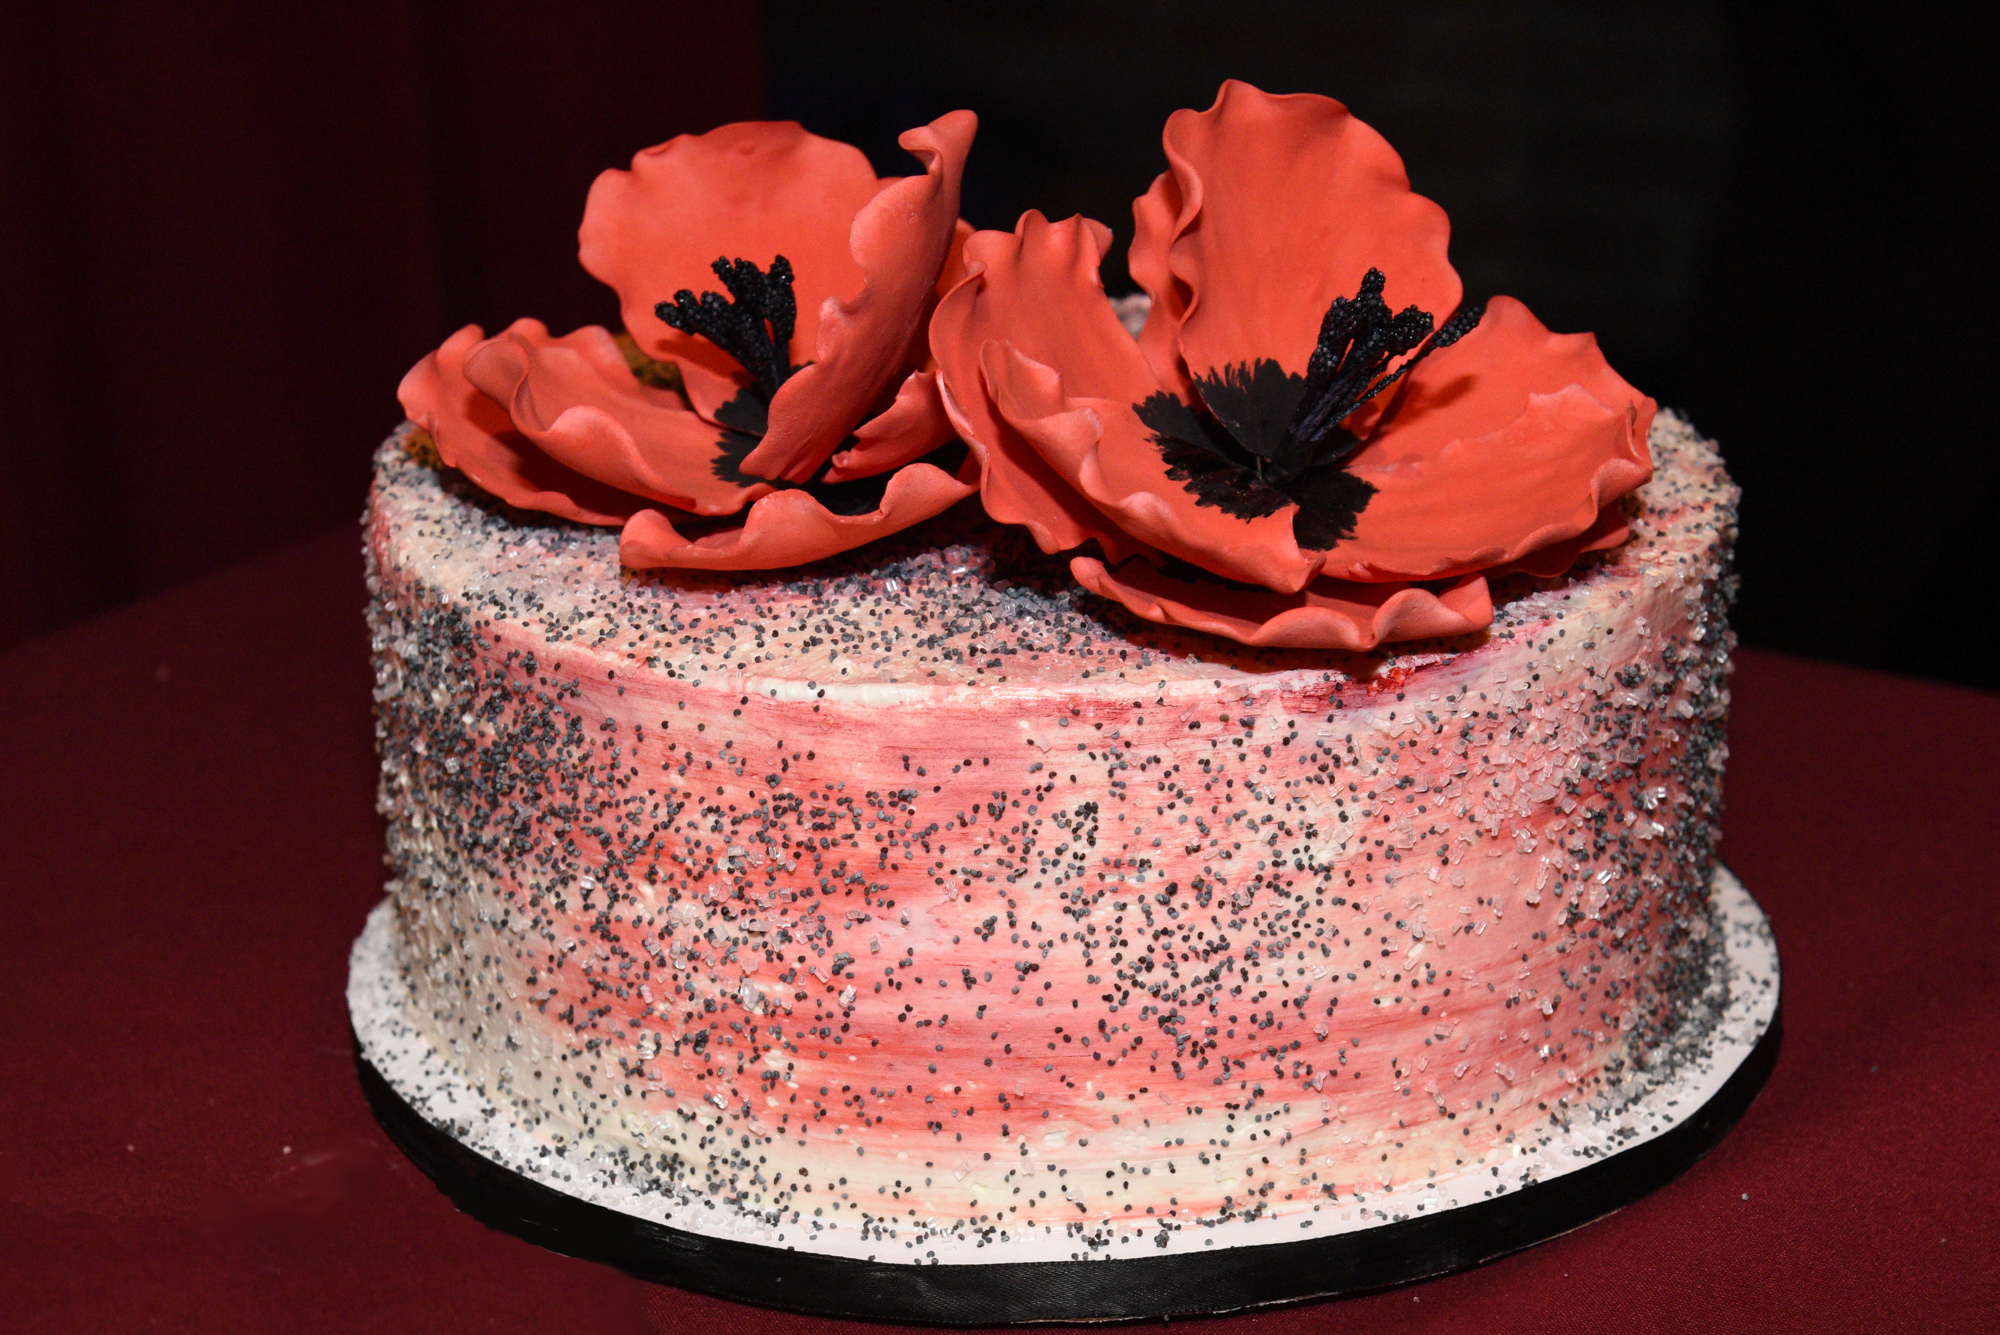 Cake with red flowers by Kaylie Carini of Hyeholde Restaurant